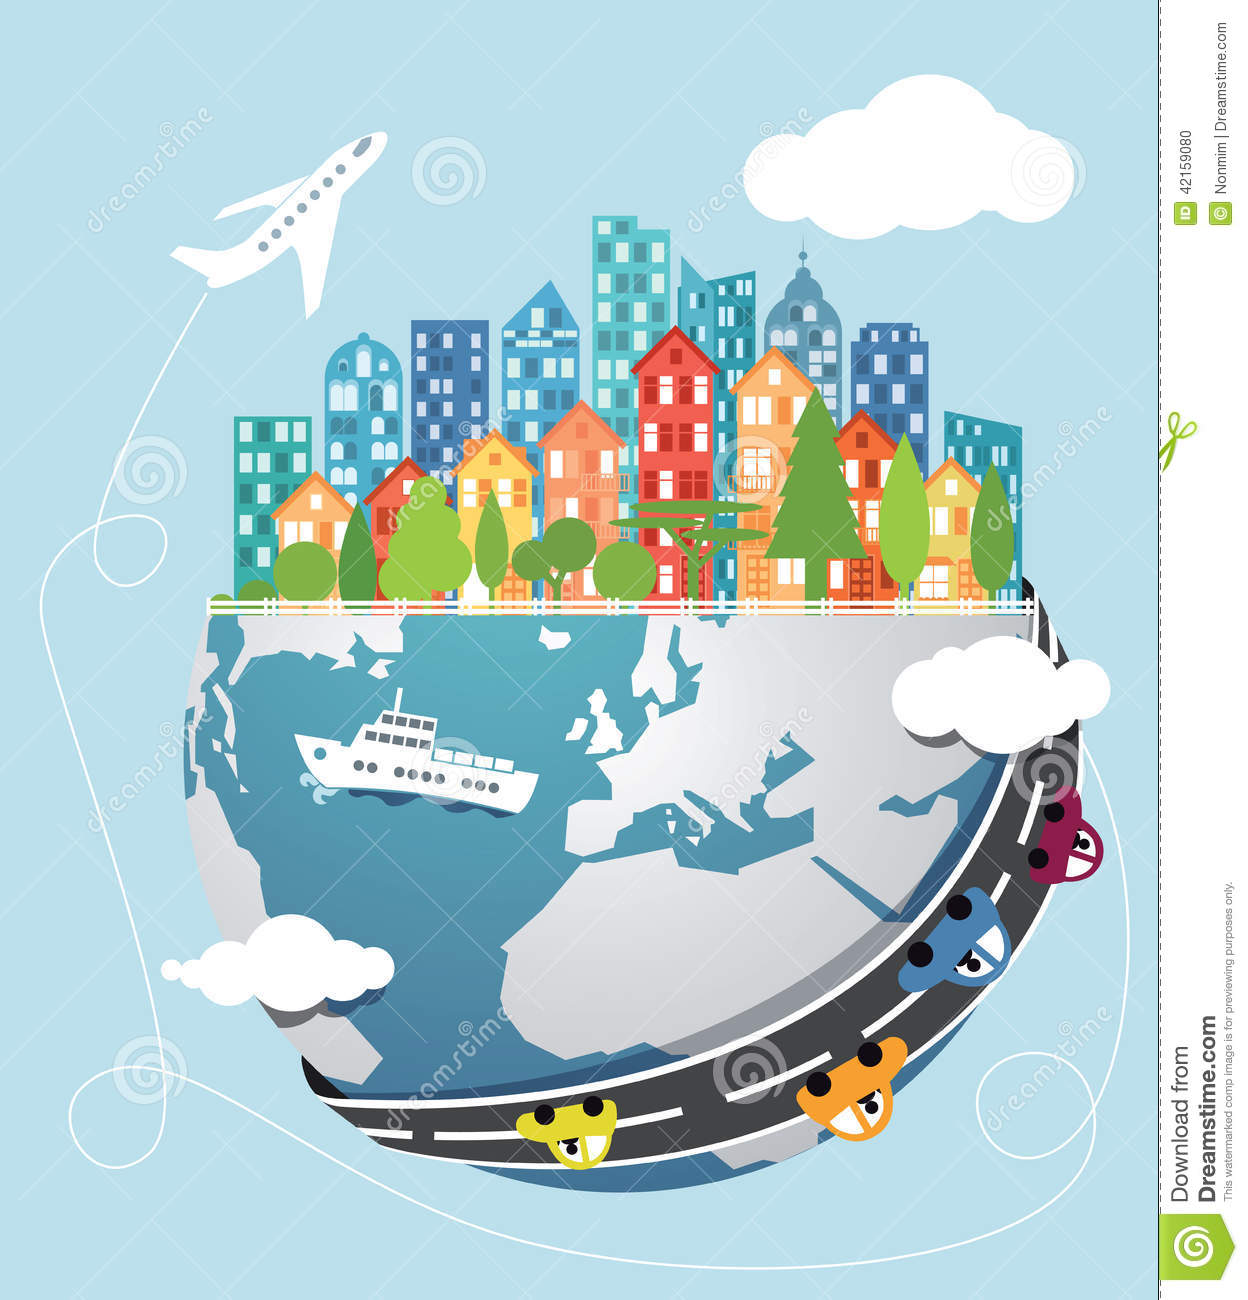 Global Transportation Stock Vector Image 42159080